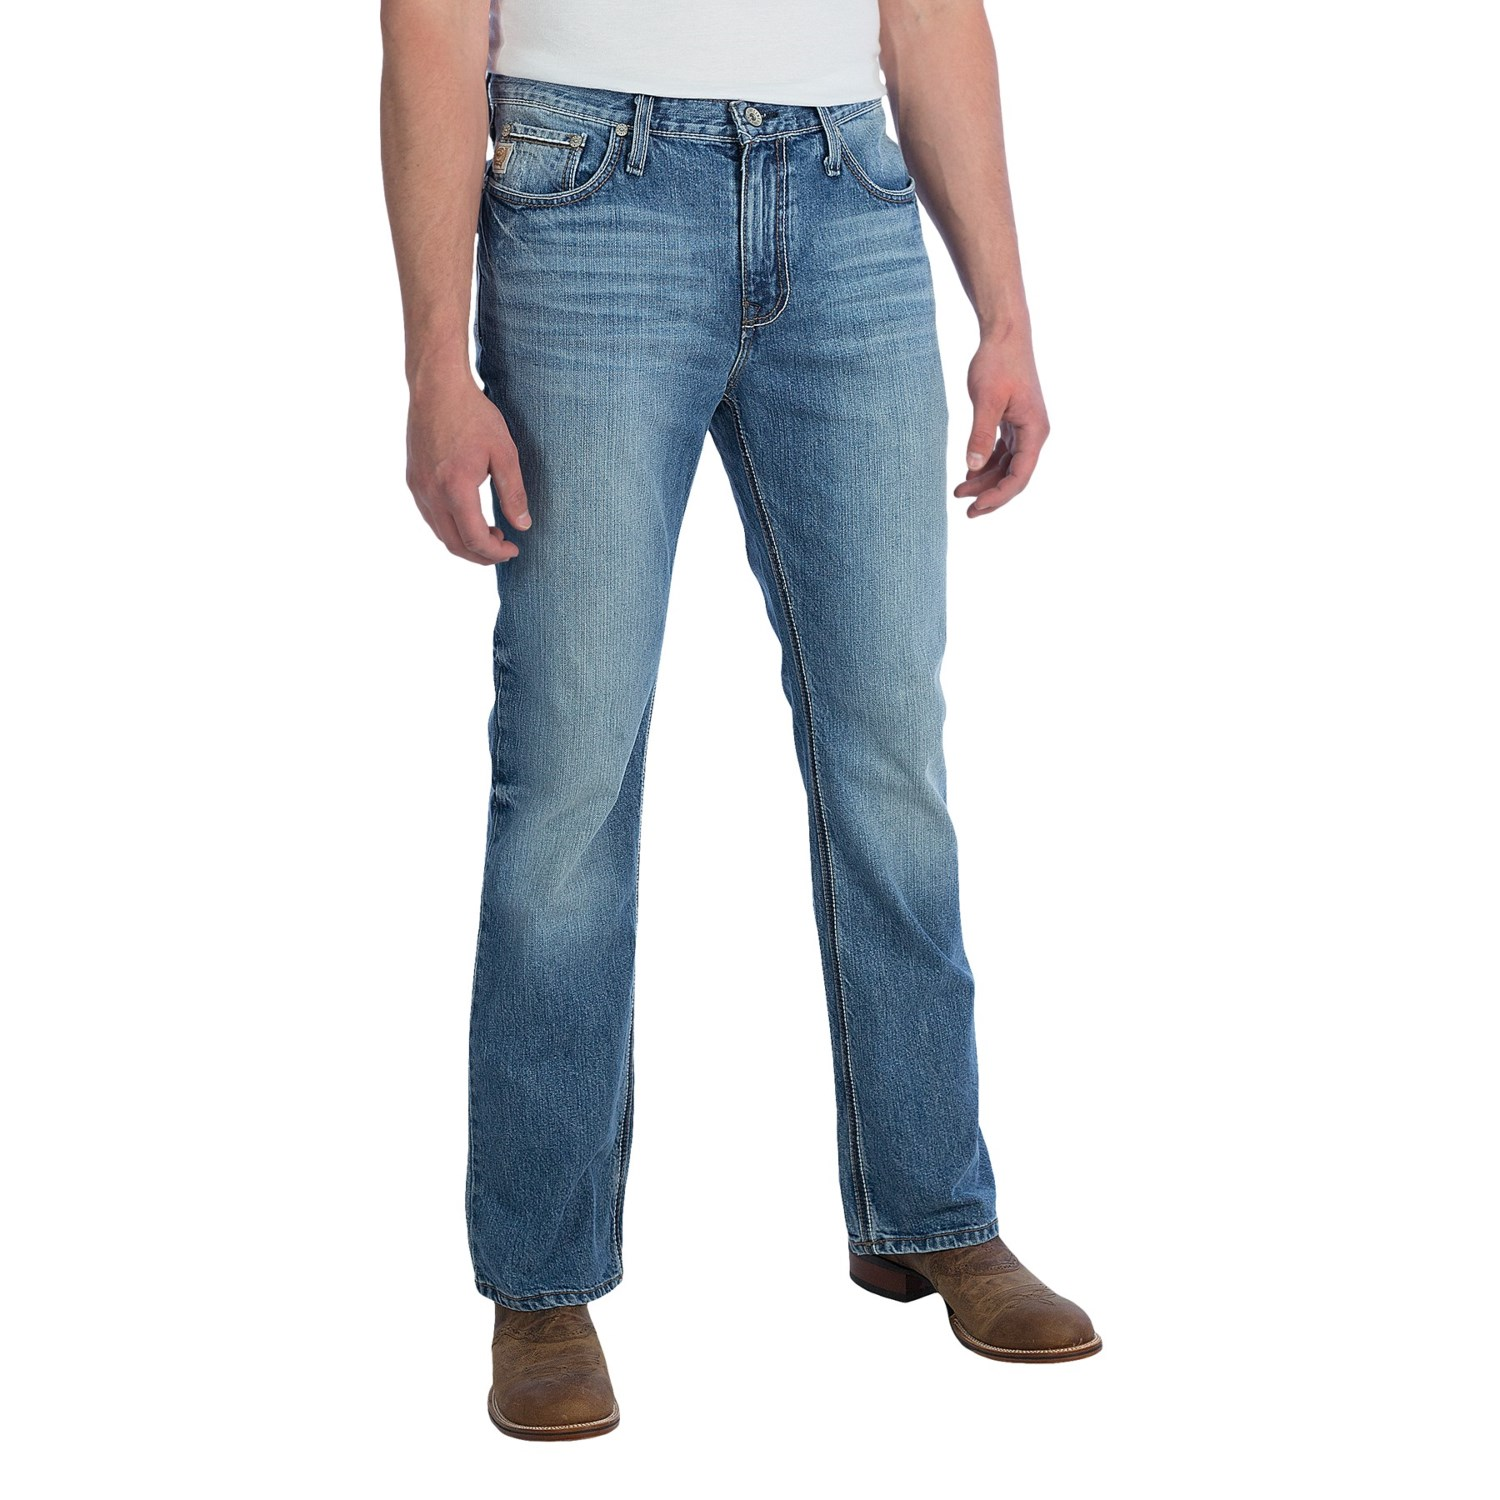 Find women's mid-rise jeans in destructed and clean styles at Buckle. Mid-rise jeans are a closet essential and you will find just the right fit and wash here.